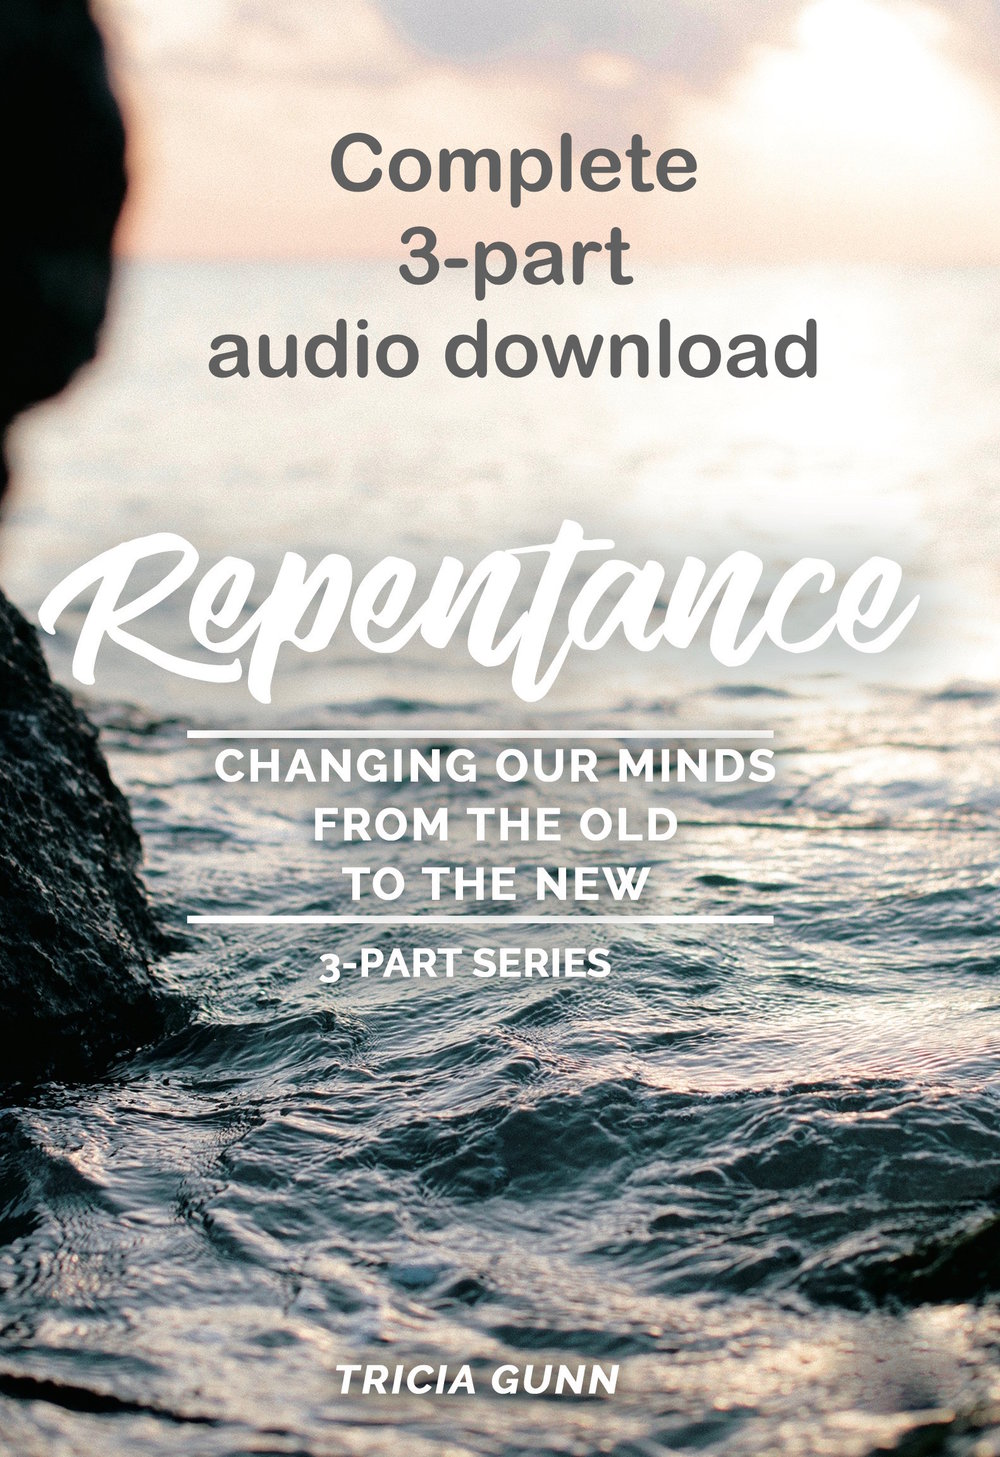 Purchase complete 3-part AUDIO series